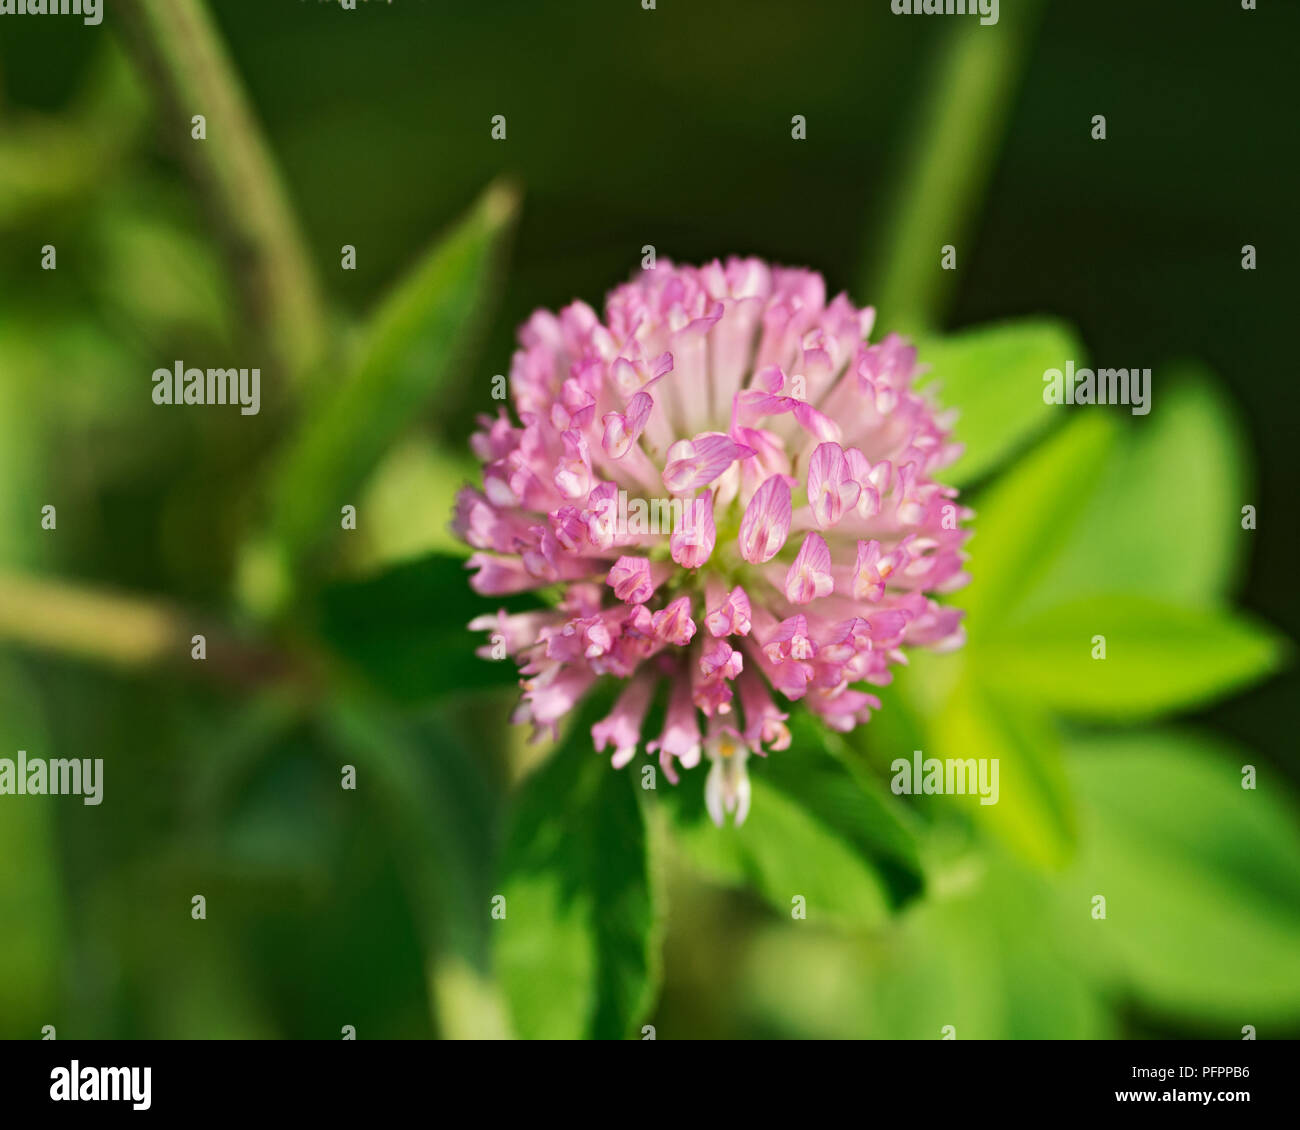 Pink Clover Flower Trifolium Pratense In Sanctuary Park Stock